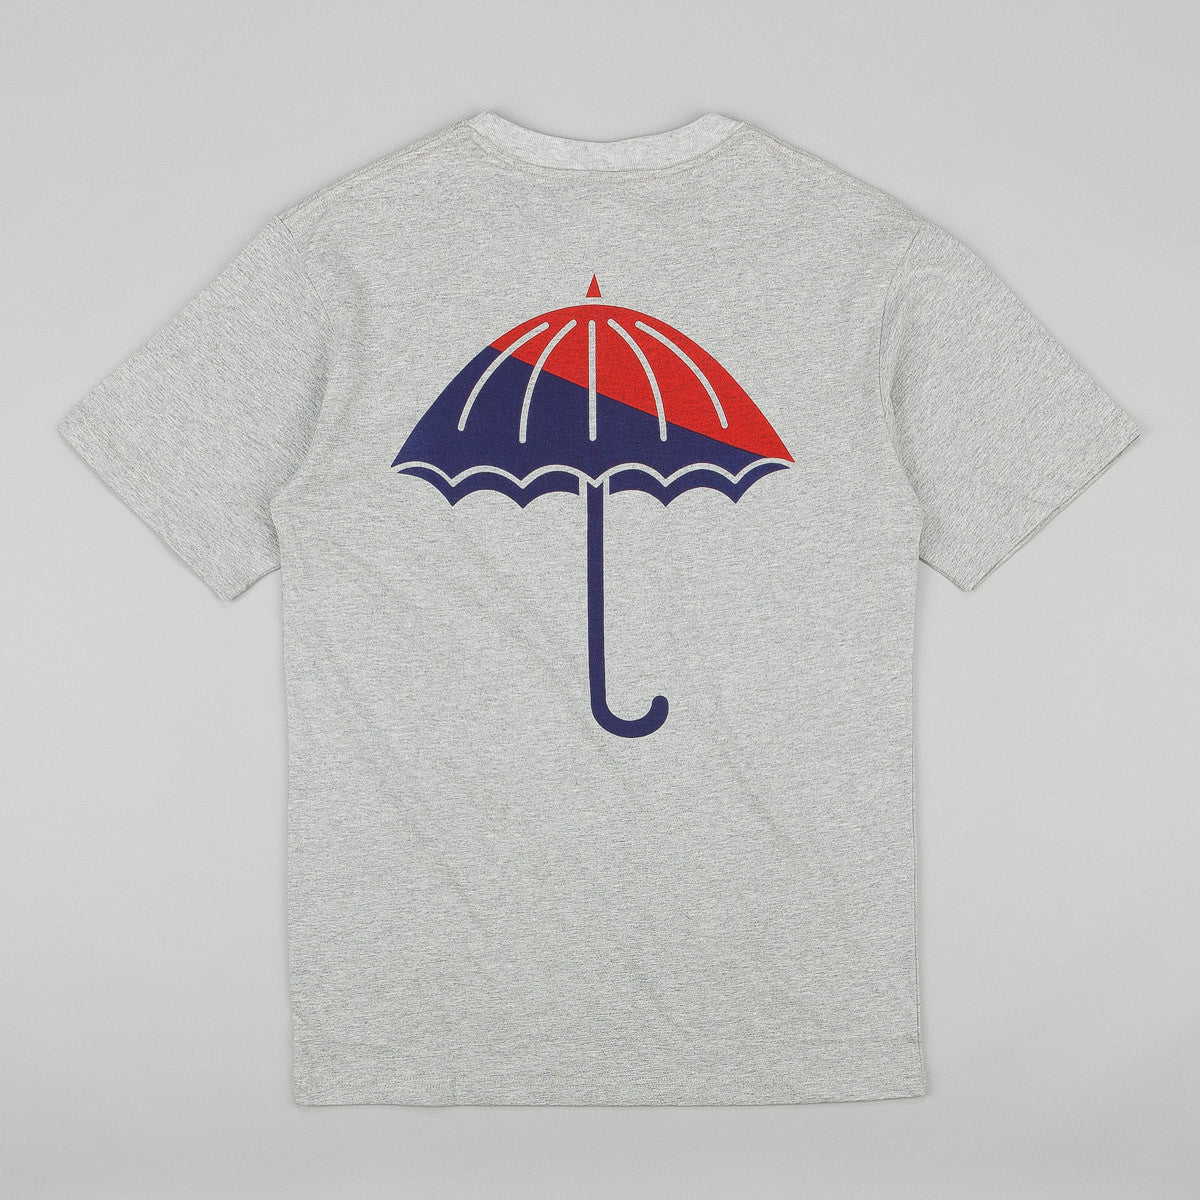 Helas Umbrella T-Shirt - Heather Grey